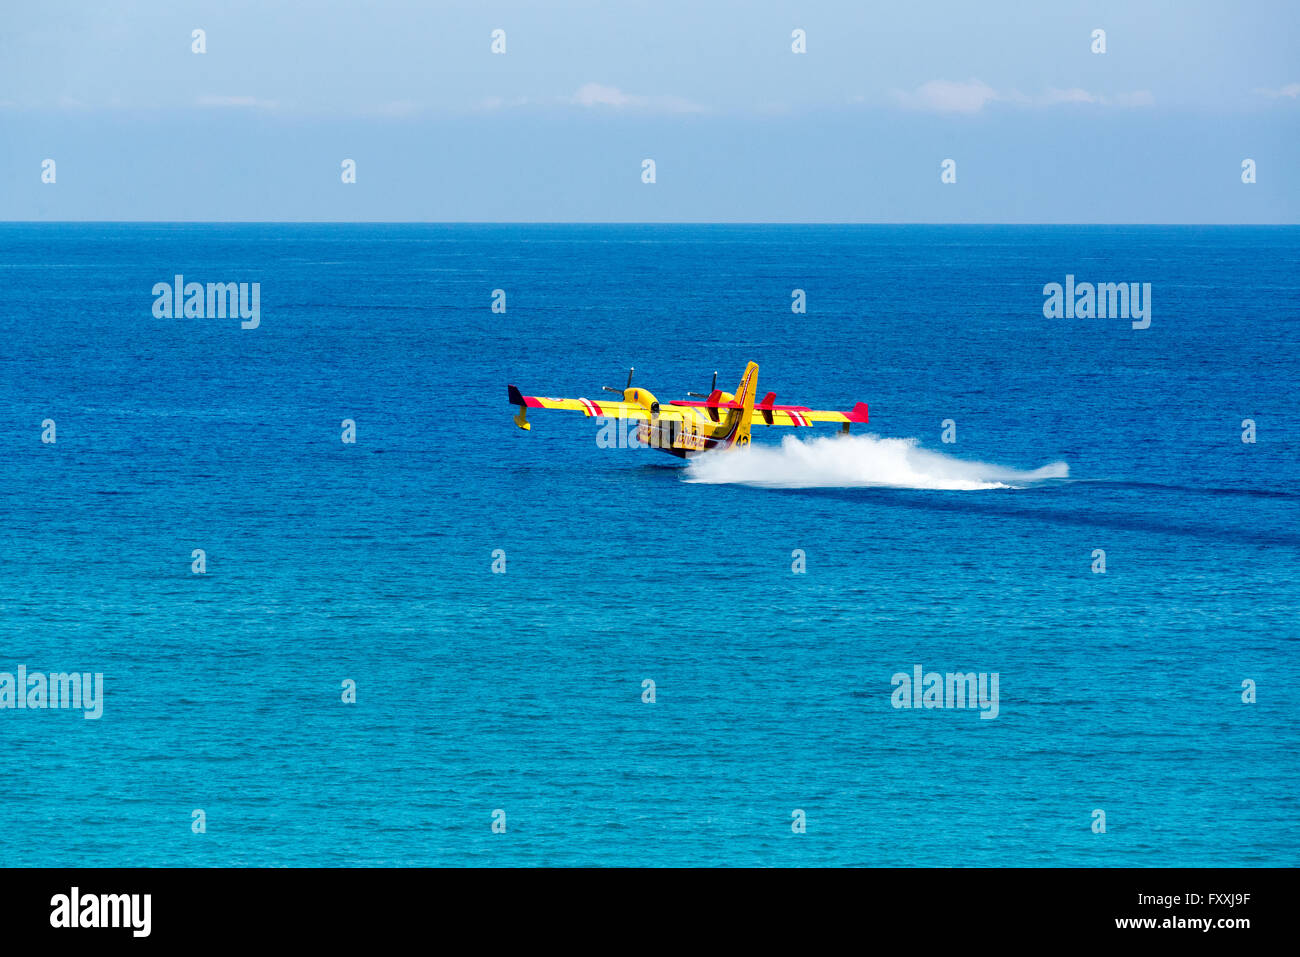 A CL-415 (Canadair Bombardier 415) of the French Sécurité Civile collecting water. Mediterranean Sea, - Stock Image